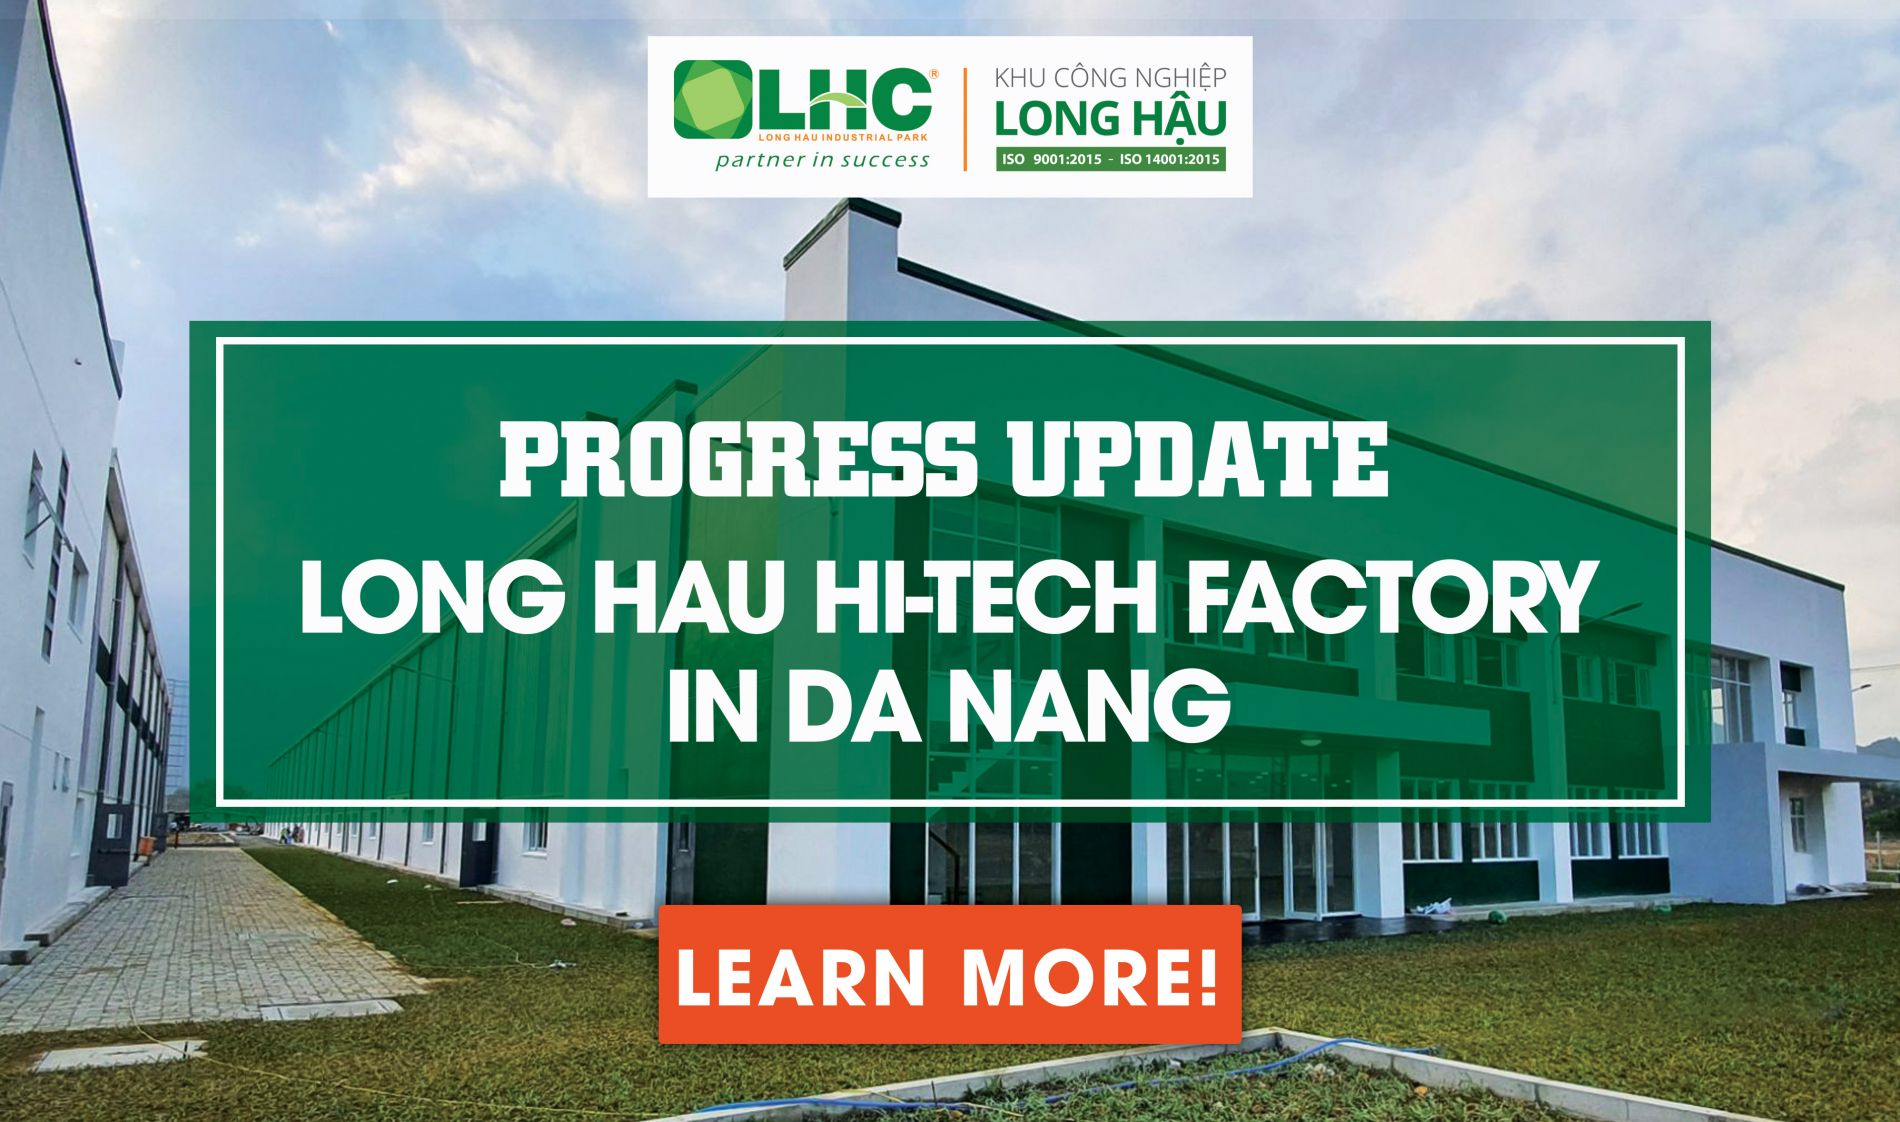 Long Hau Hi-tech Factory in Da Nang Progress Update | March 13th, 2020